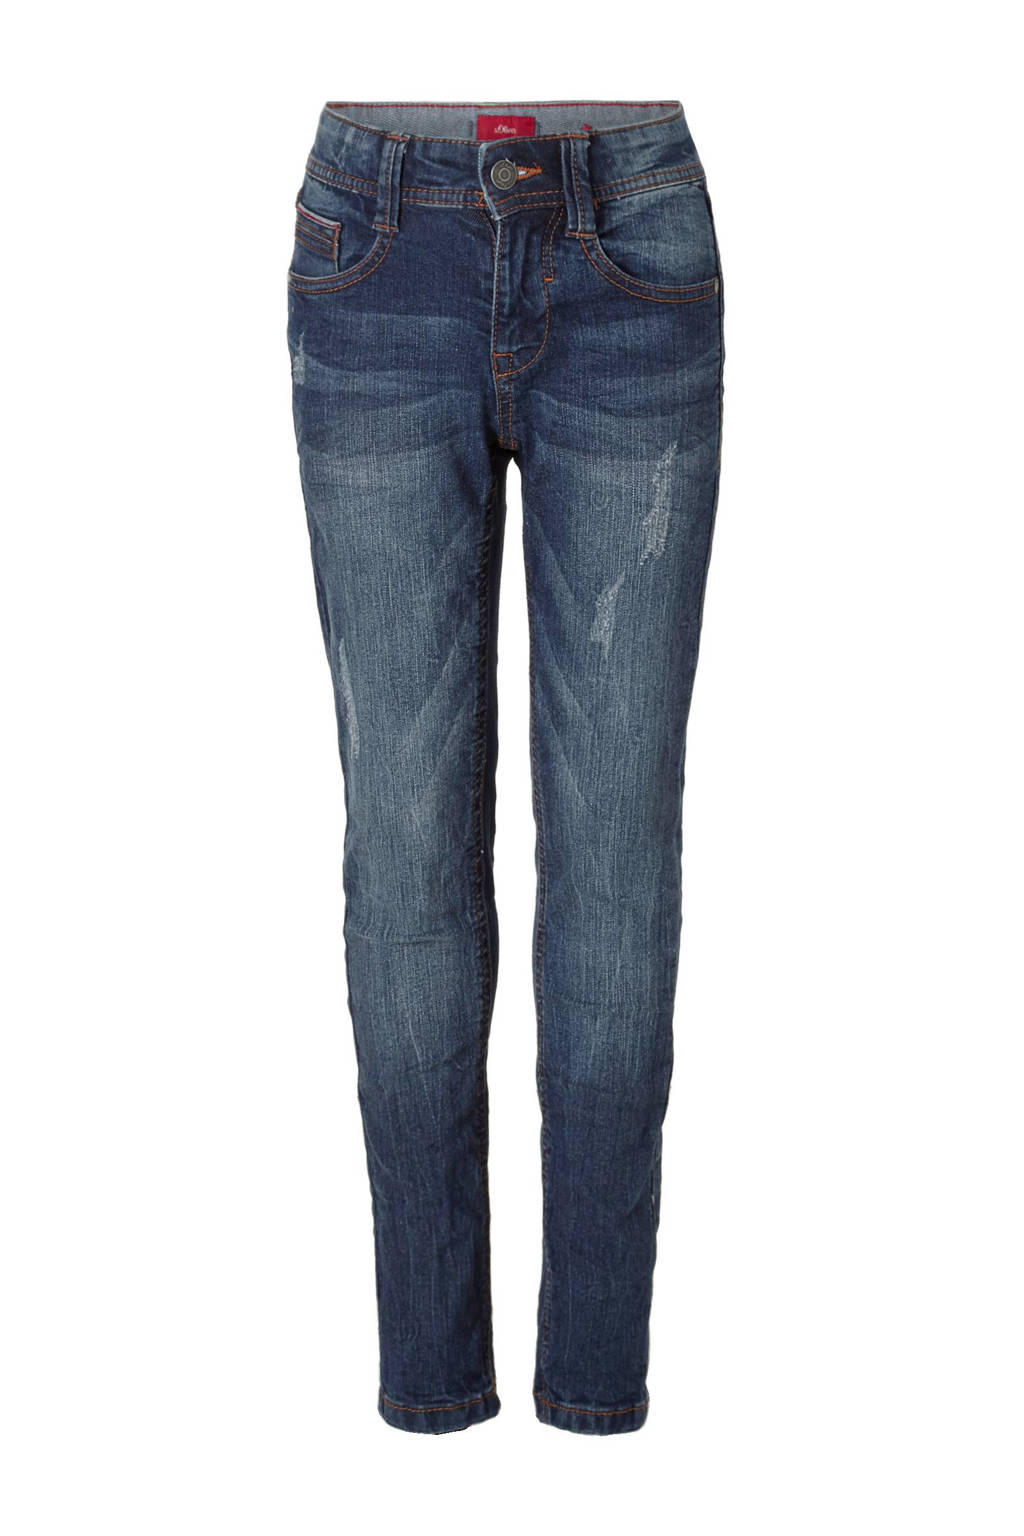 s.Oliver skinny fit jeans, Blauw